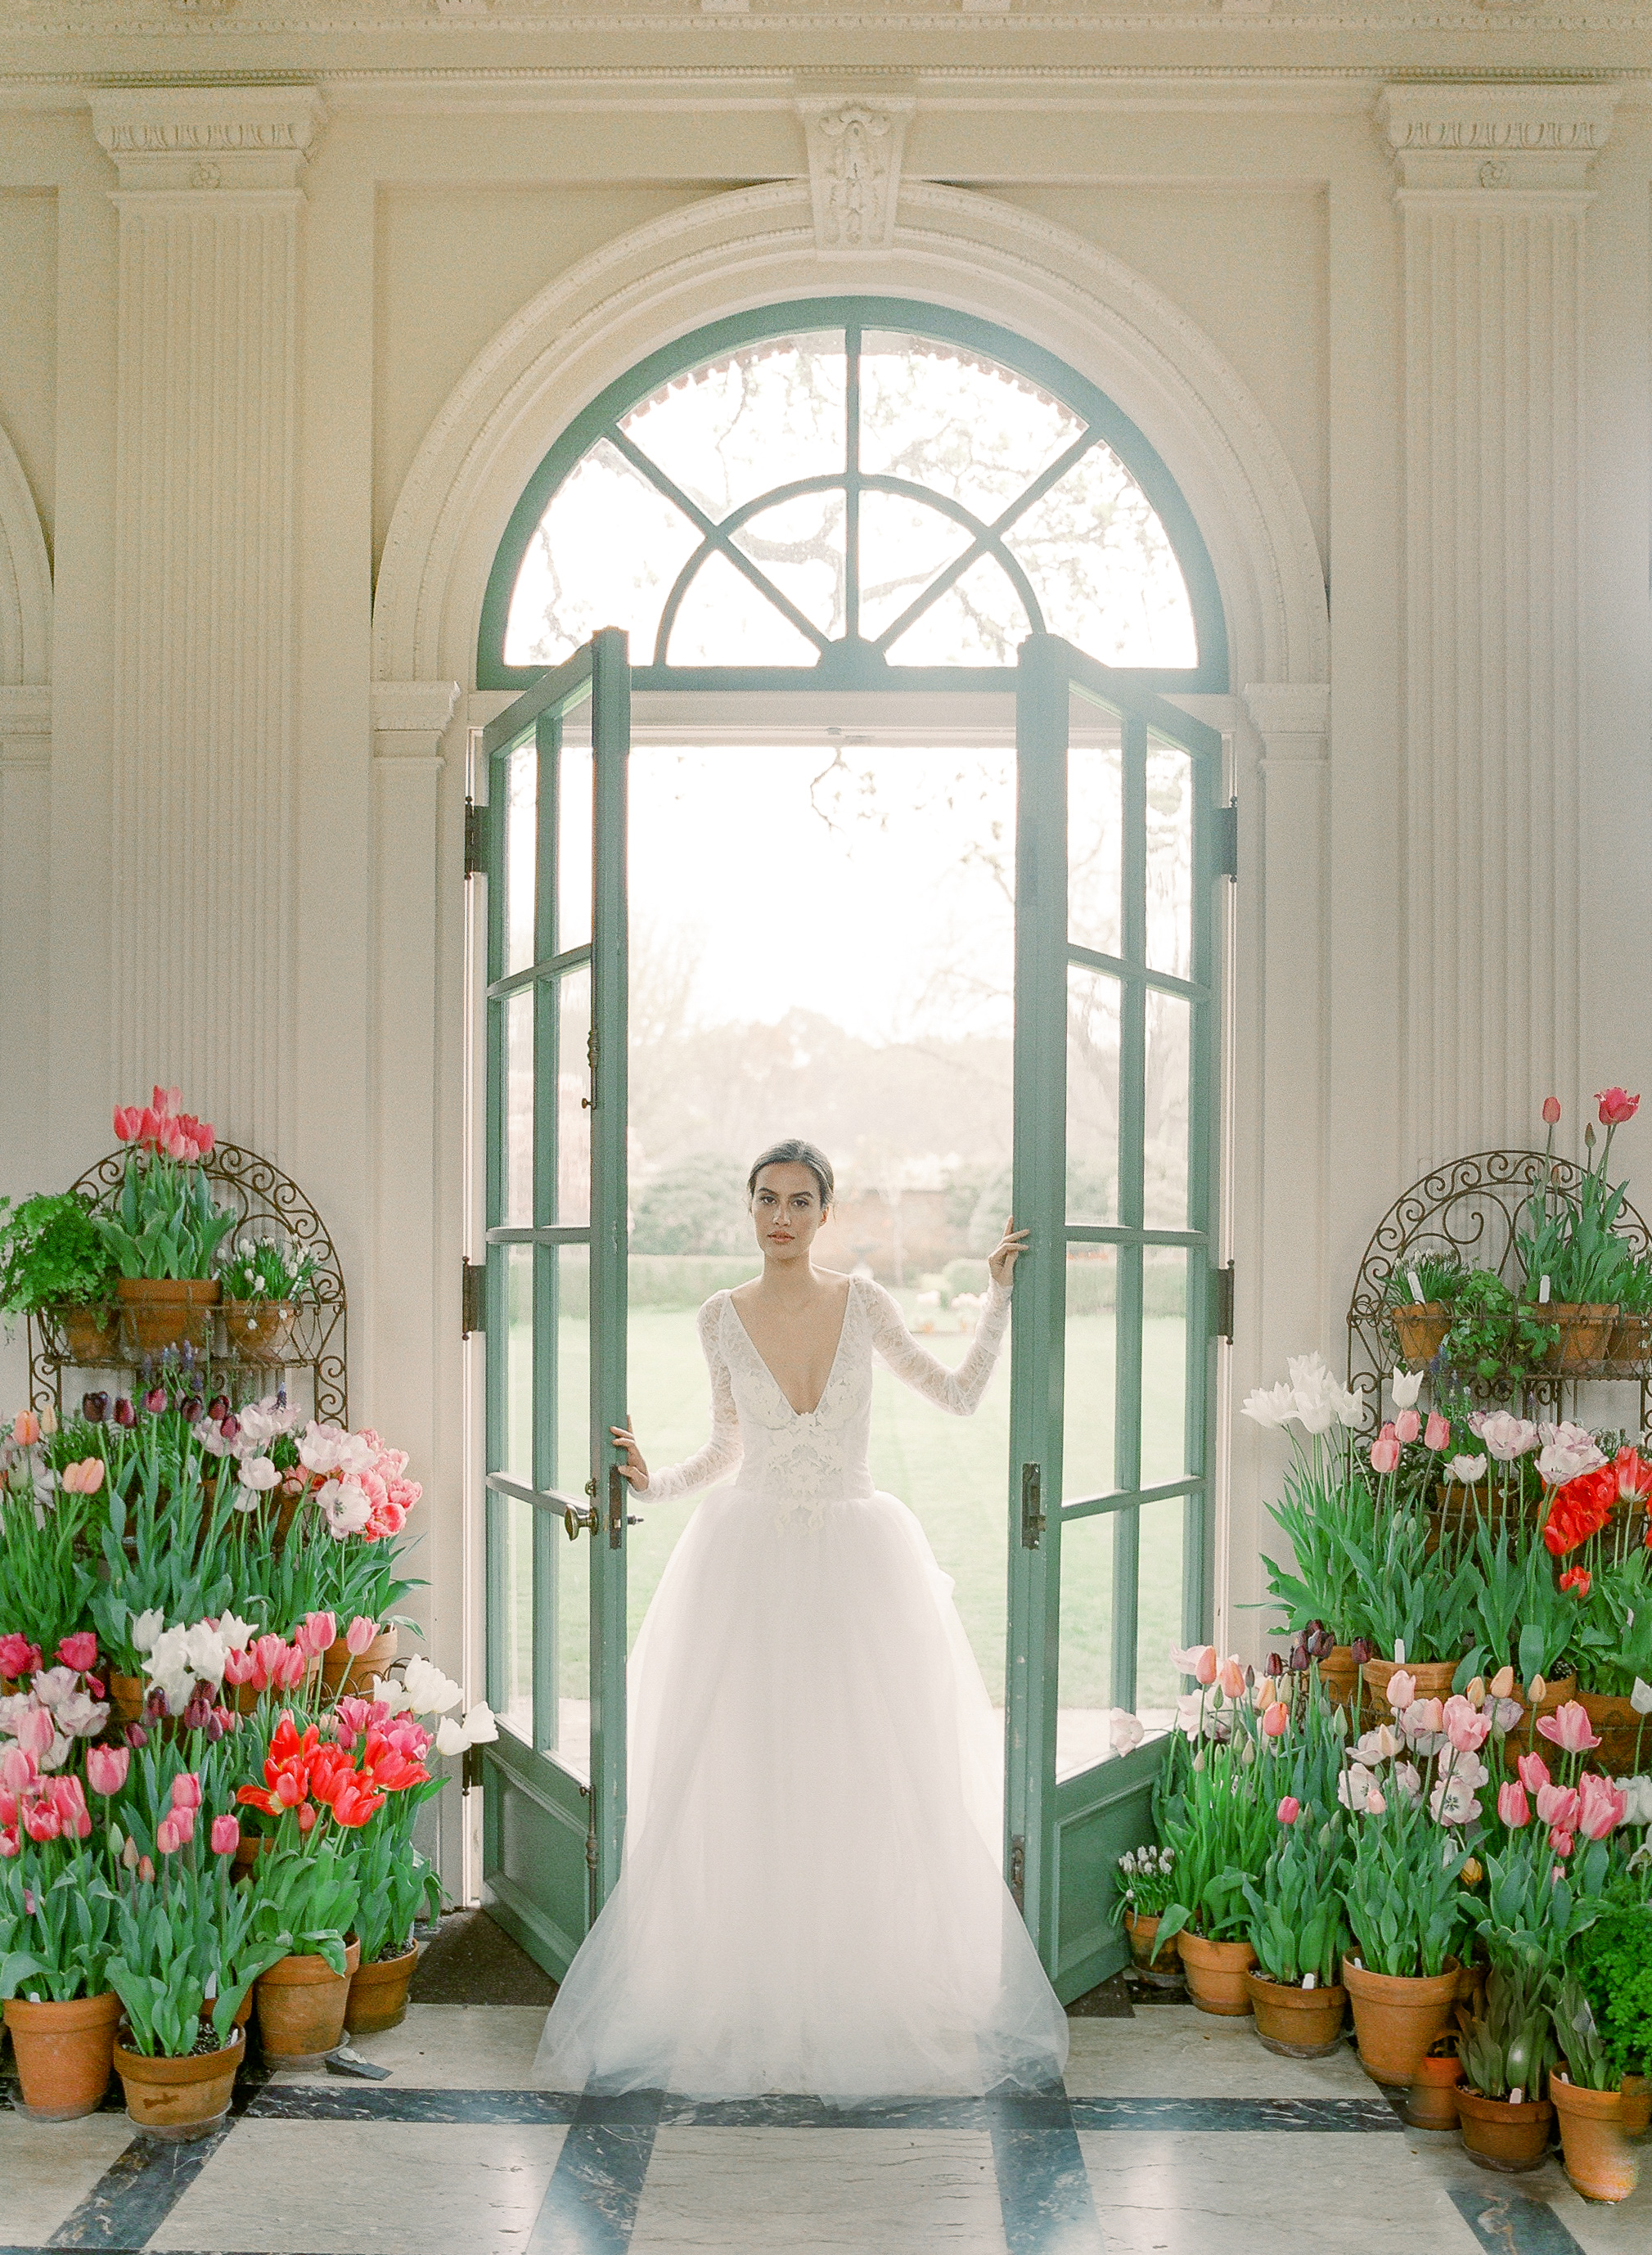 Filoli | Filoli Garden | Wedding | Amanda Crean Photography | Bustle Events | Vera Wang | Bride|